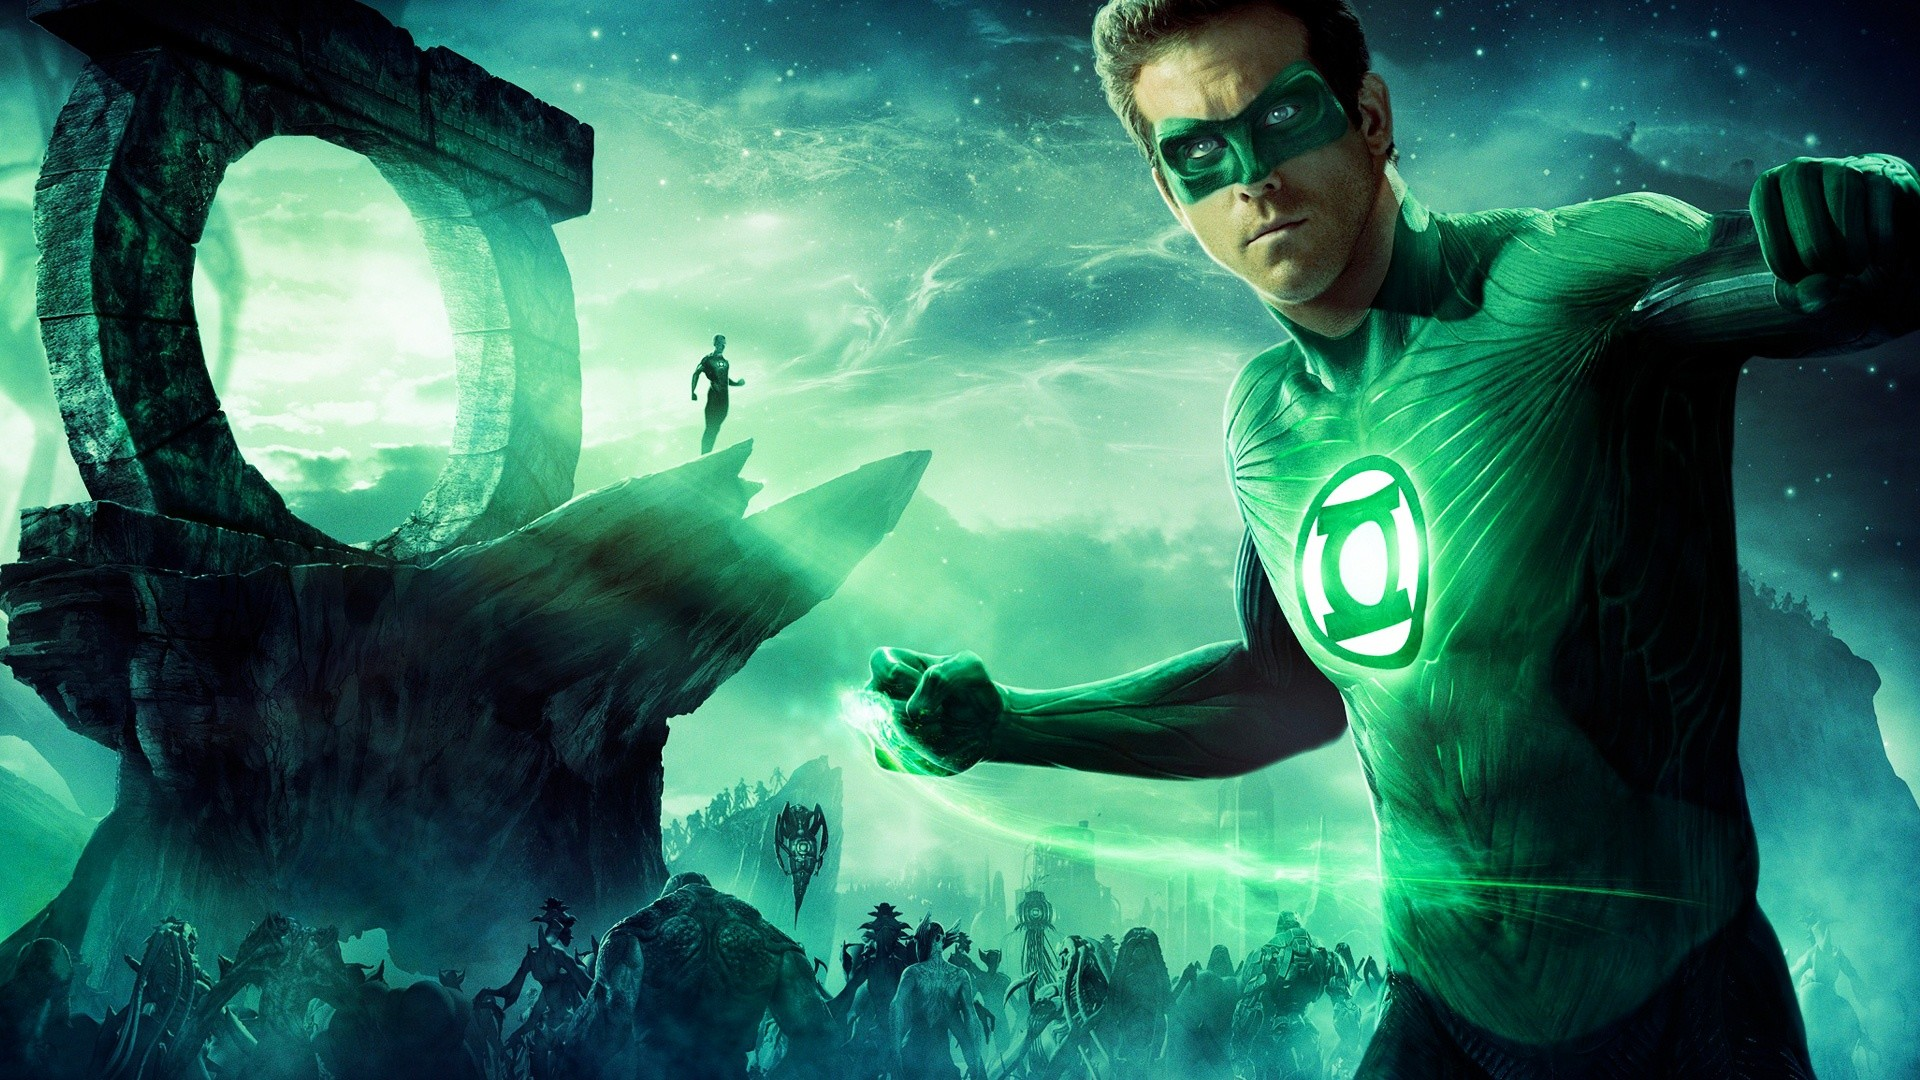 undefined Green Lantern Corps Wallpapers Wallpapers   3D Wallpapers    Pinterest   Green lantern wallpaper and Wallpaper